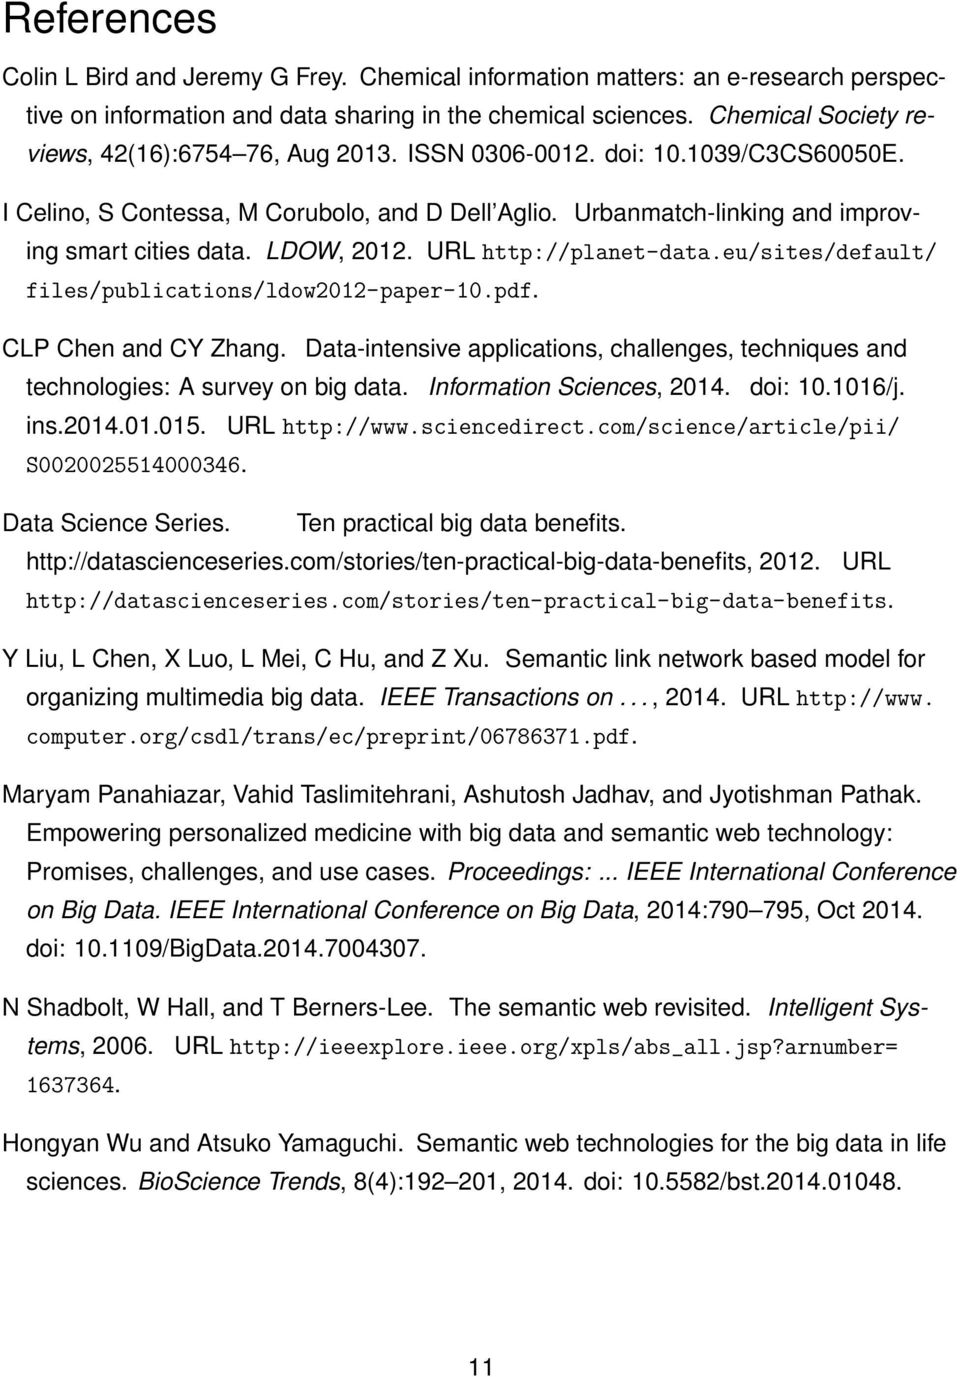 LDOW, 2012. URL http://planet-data.eu/sites/default/ files/publications/ldow2012-paper-10.pdf. CLP Chen and CY Zhang.